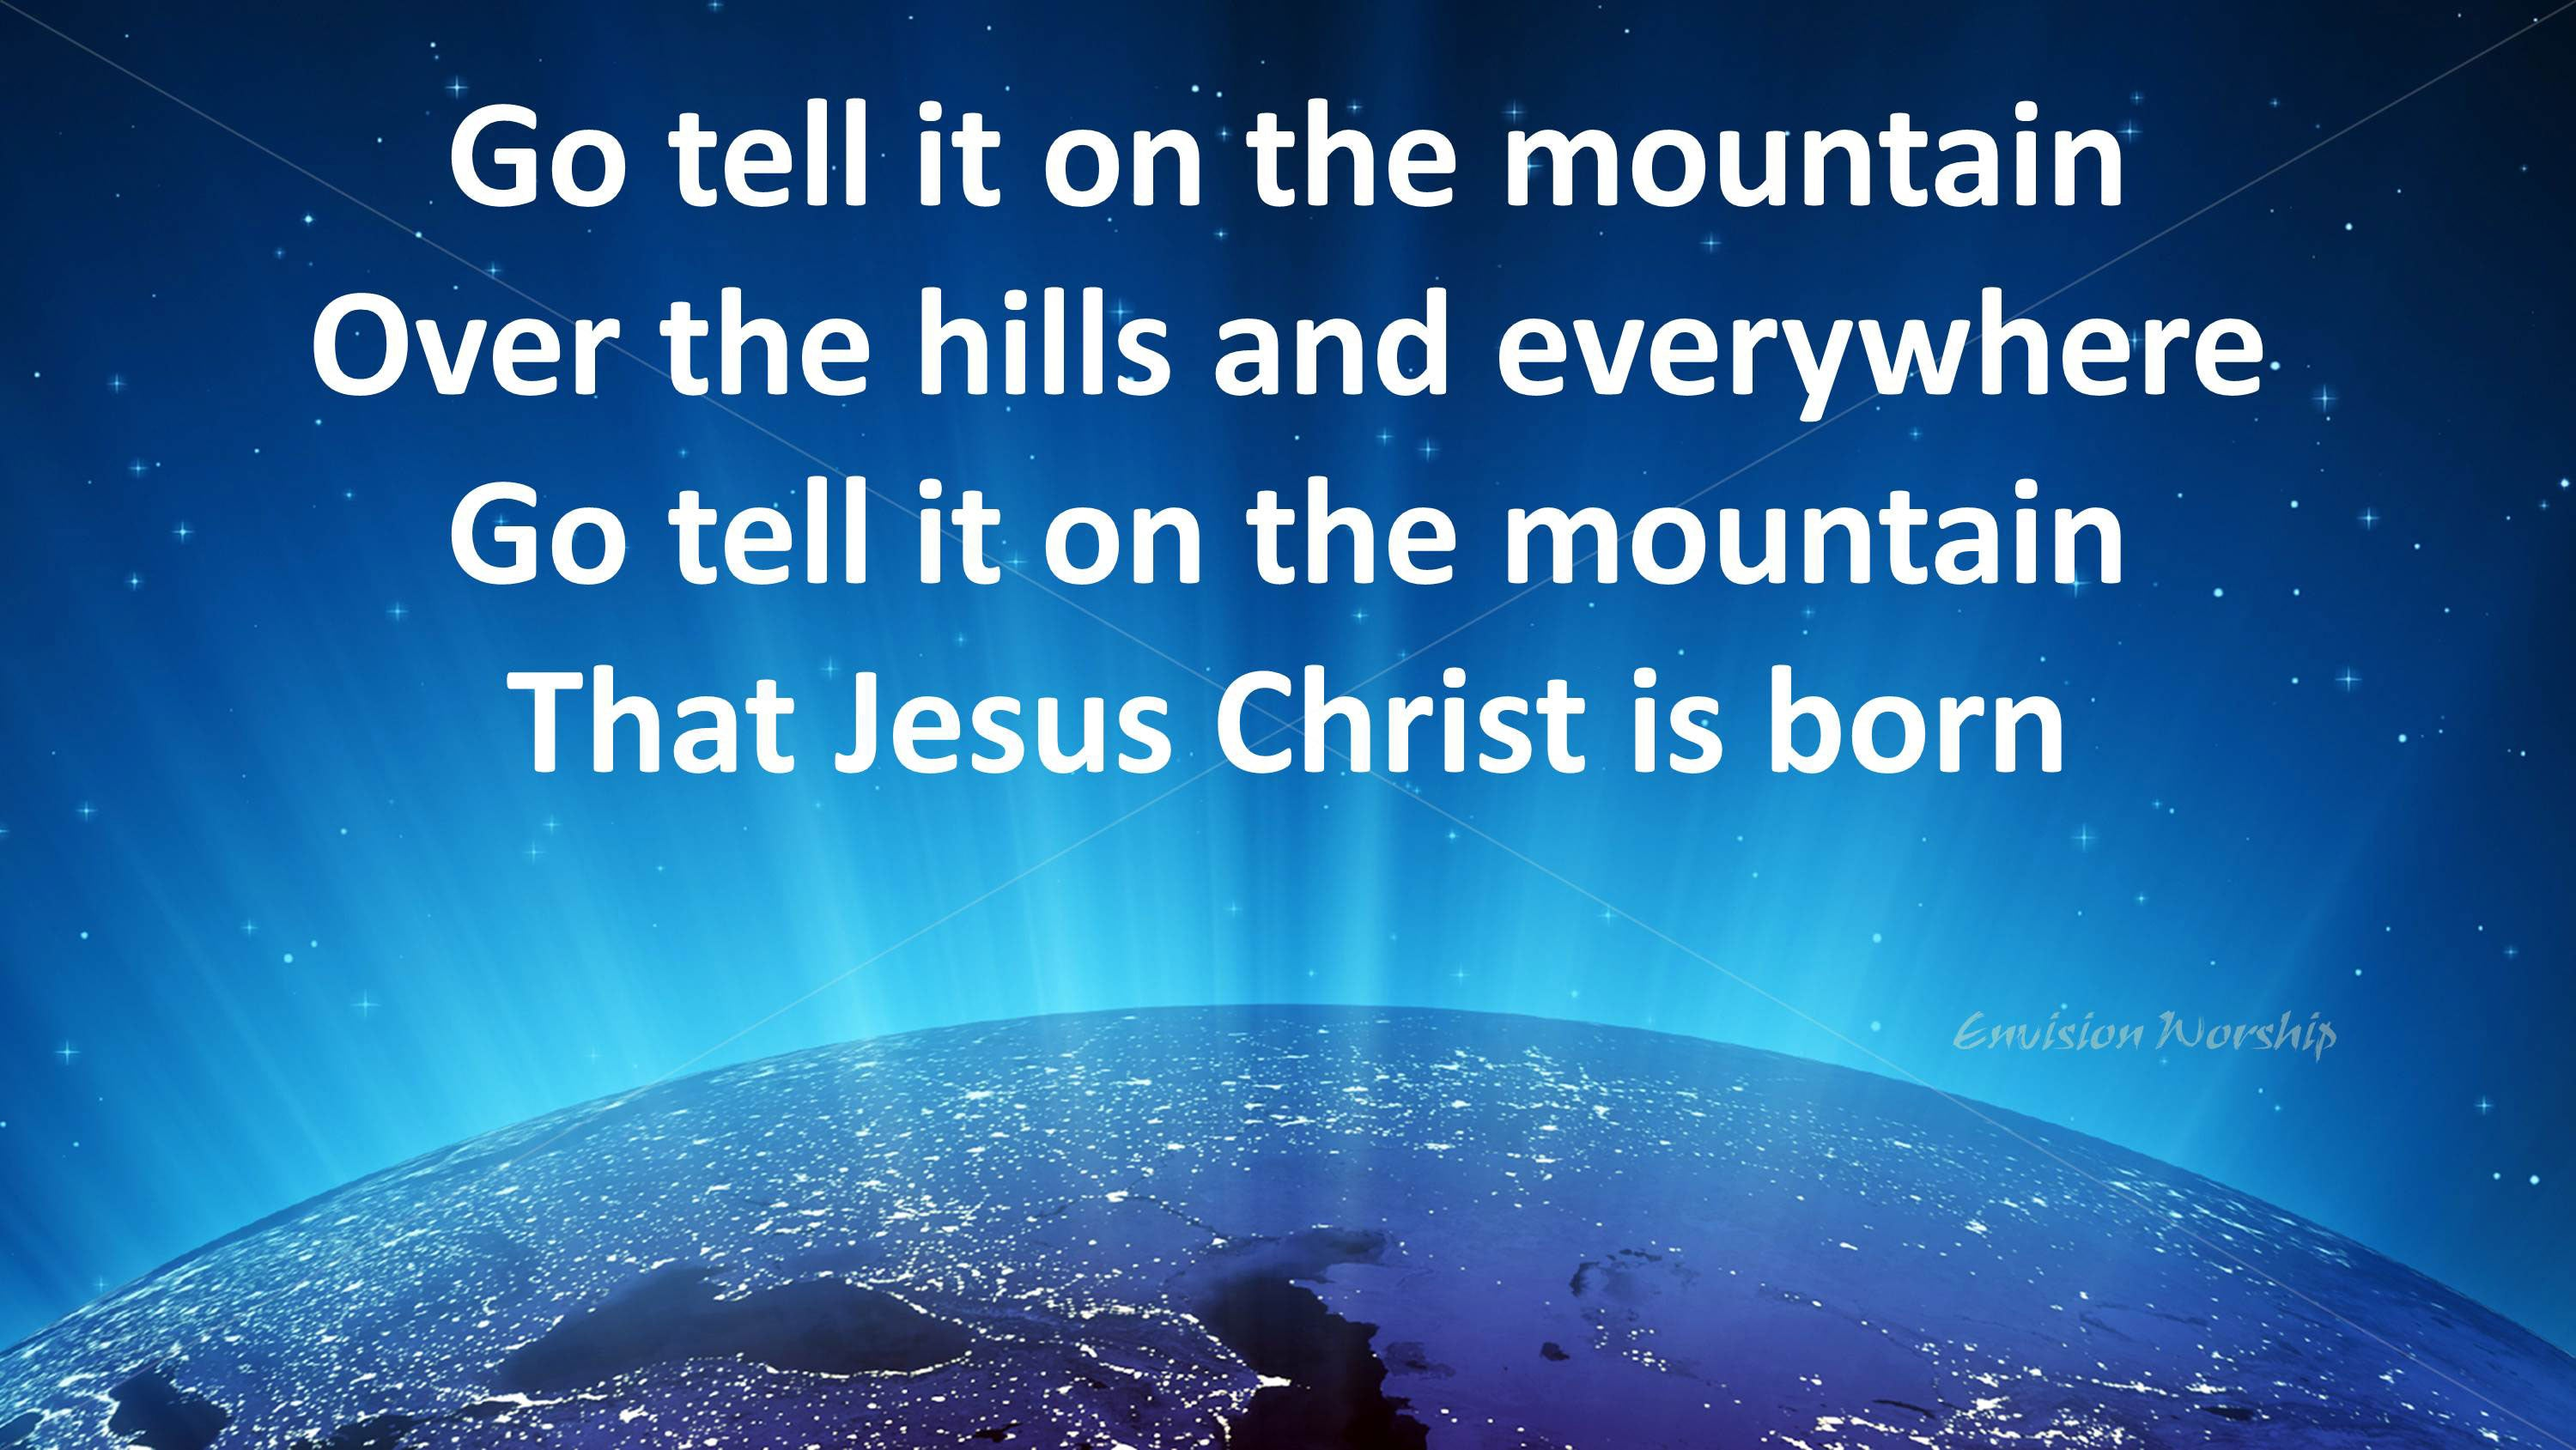 Go Tell It On The Mountain with lyrics - Gorgeous contemporary image